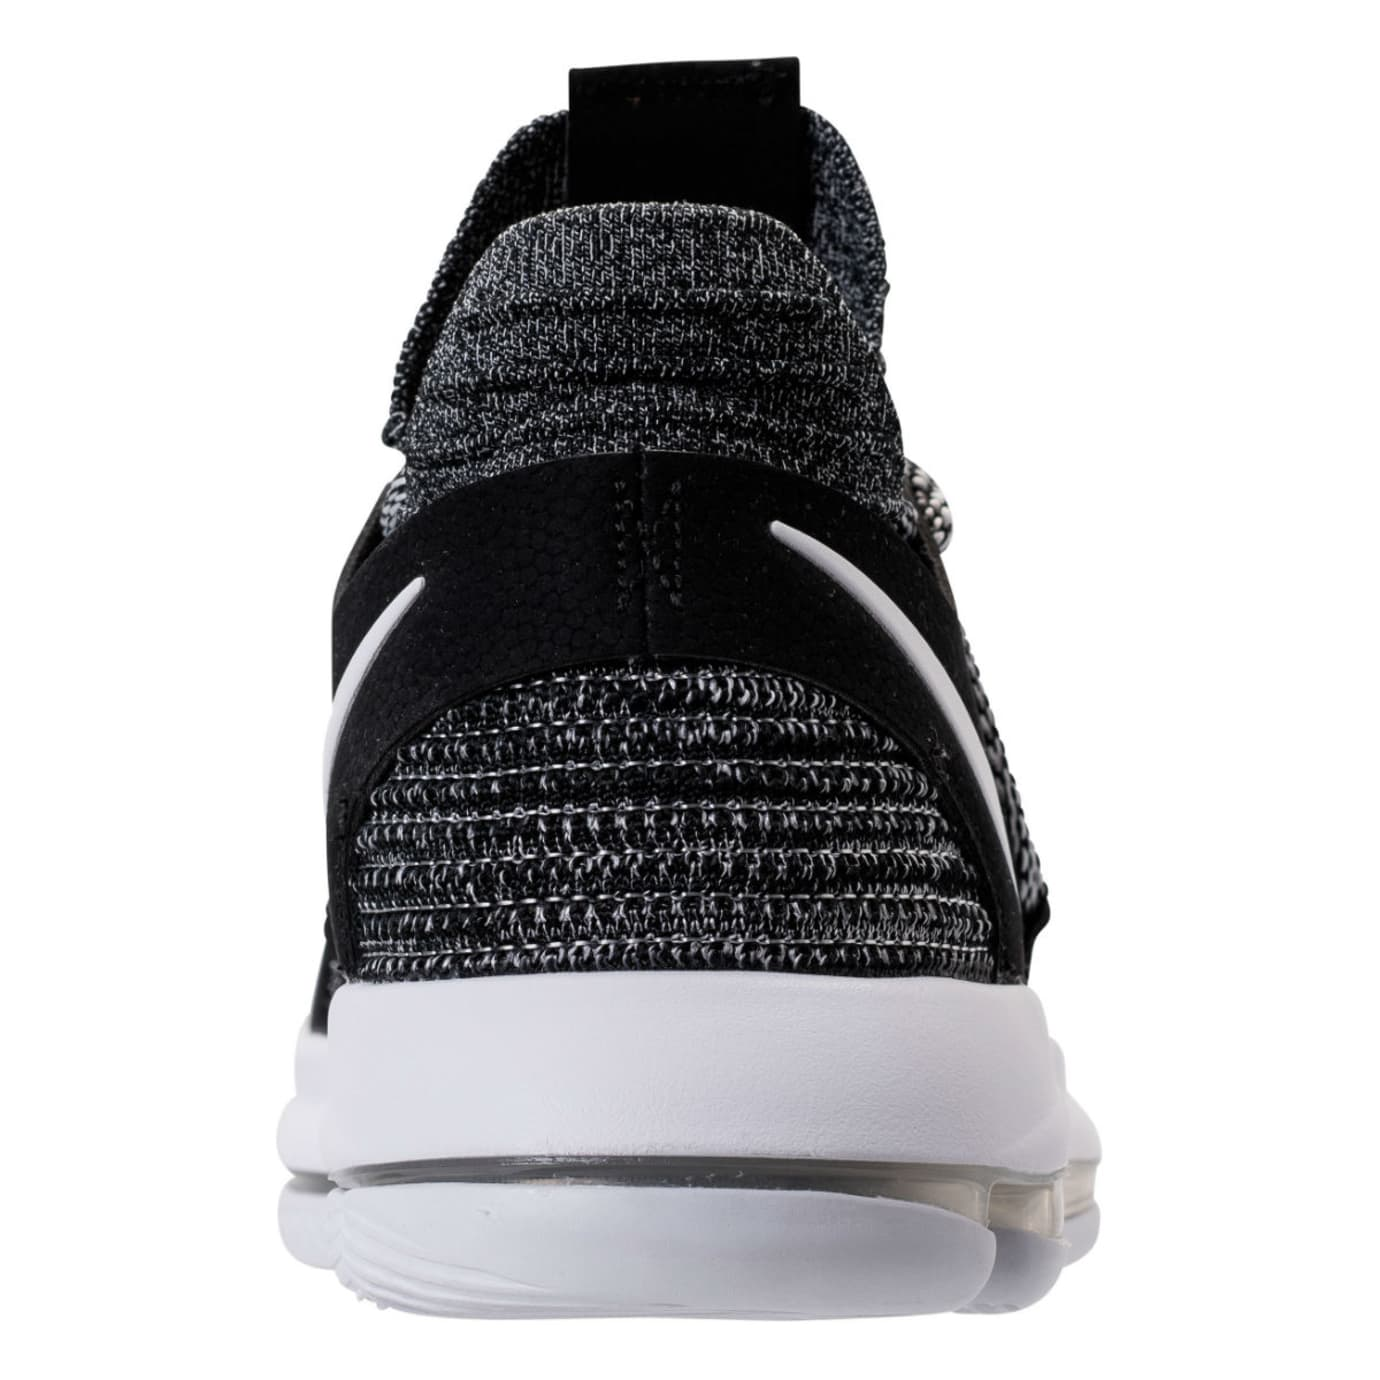 reputable site 47cff 72a03 Nike KD 10 Oreo Release Date 897815-001 | Sole Collector